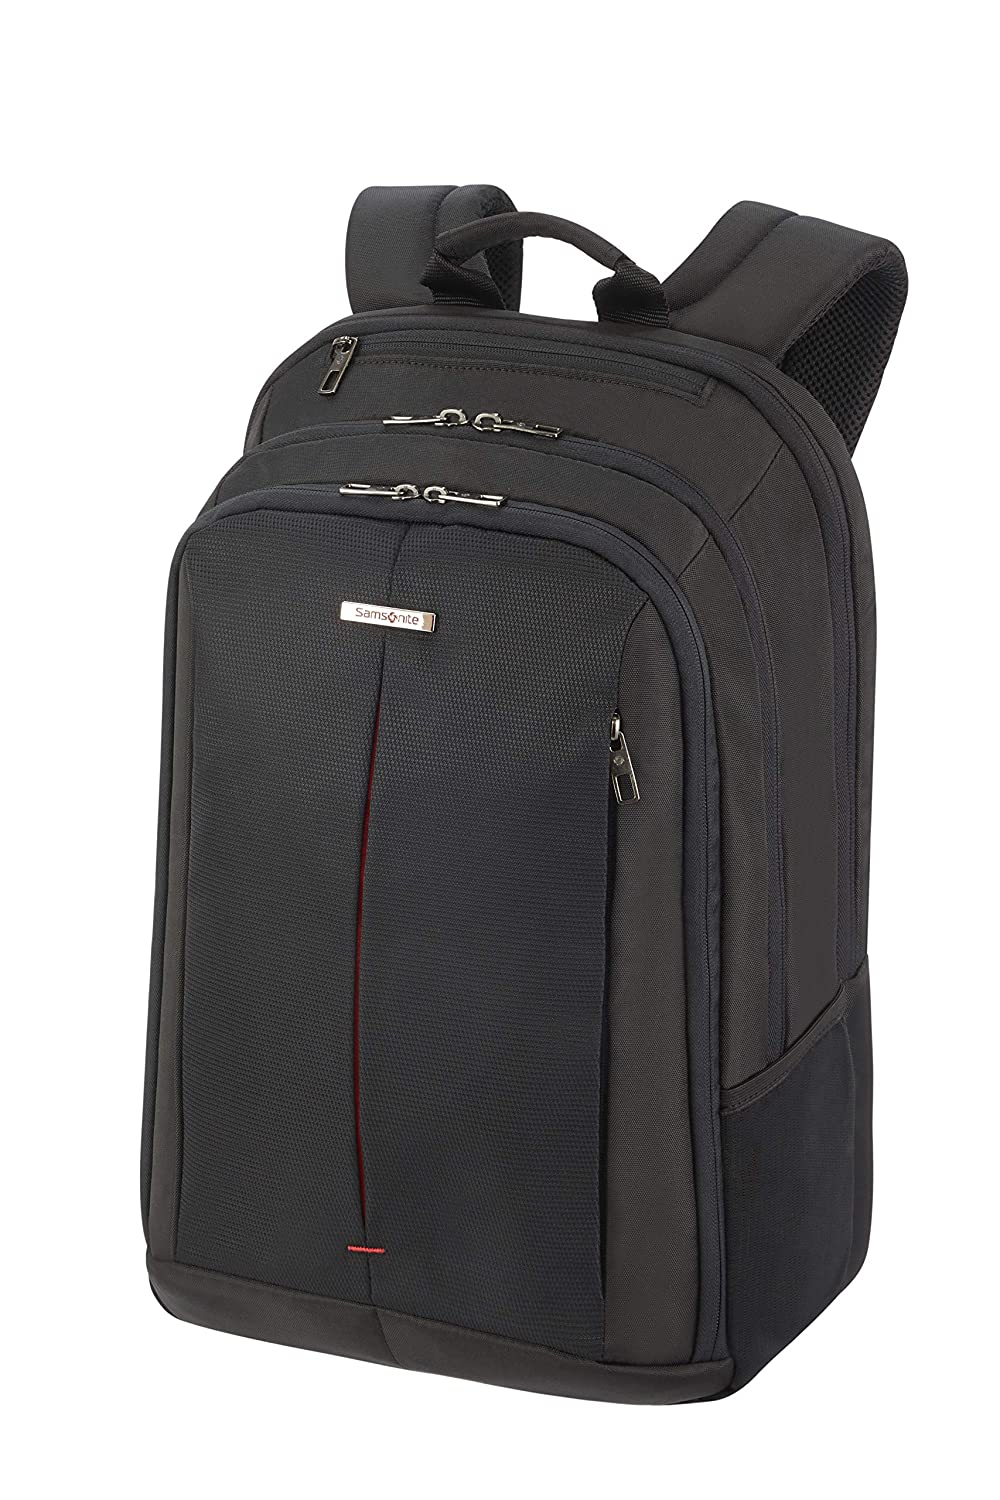 68092758974 Samsonite Guardit Large Laptop Backpack 48 cm, Black (Black) - 115331/1041:  Amazon.co.uk: Luggage